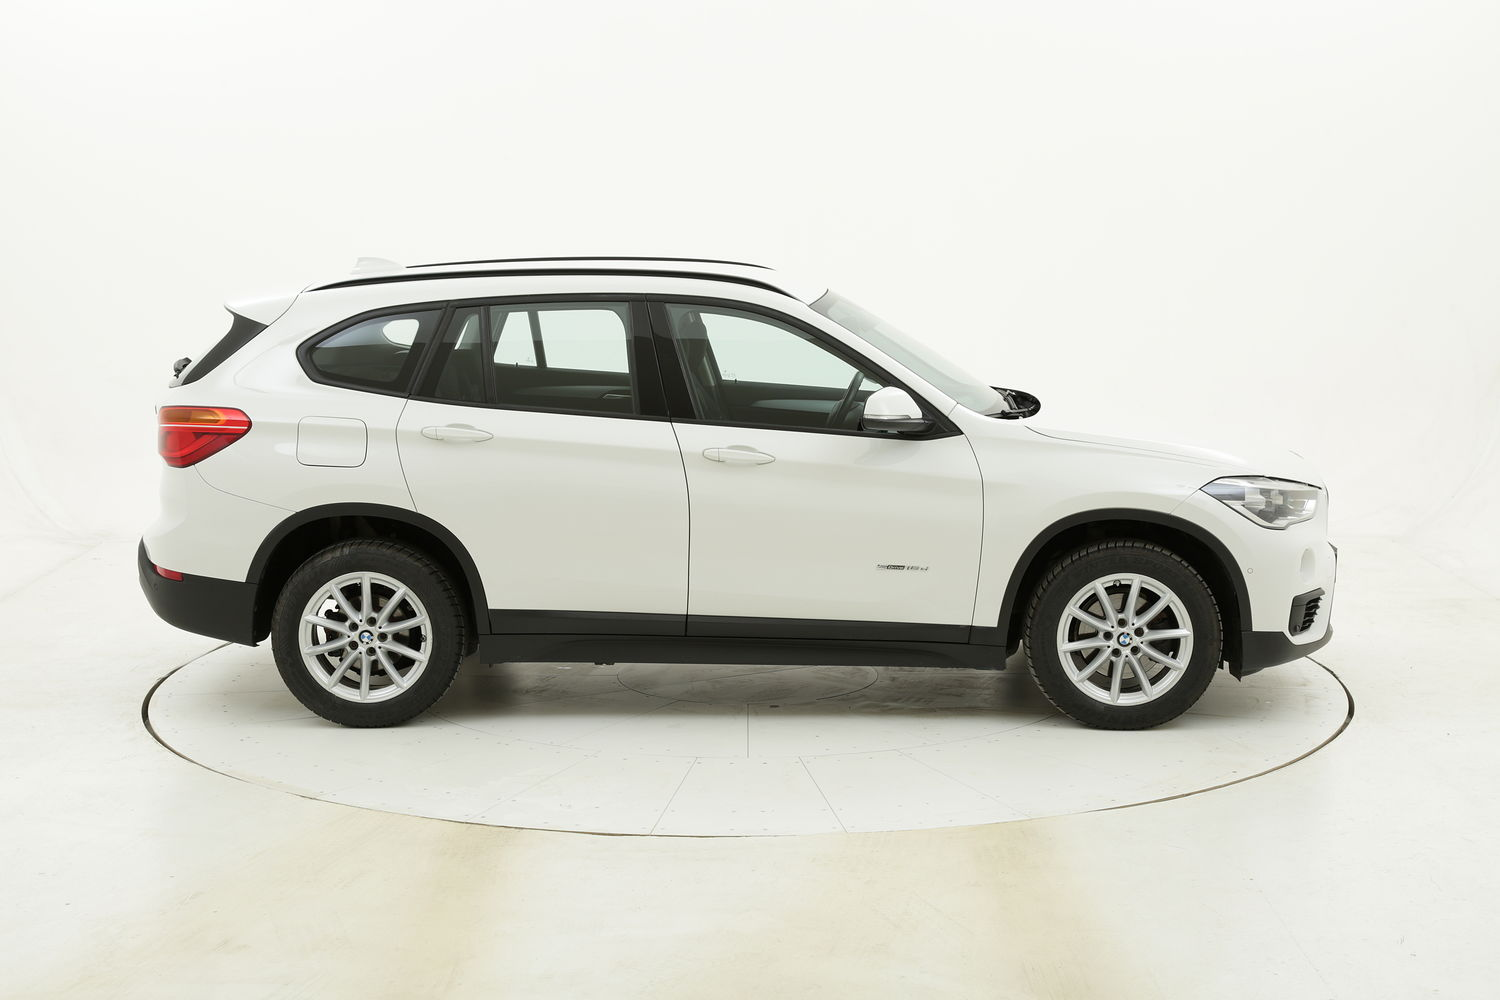 BMW X1 18d sDrive Business aut. usata del 2017 con 112.169 km